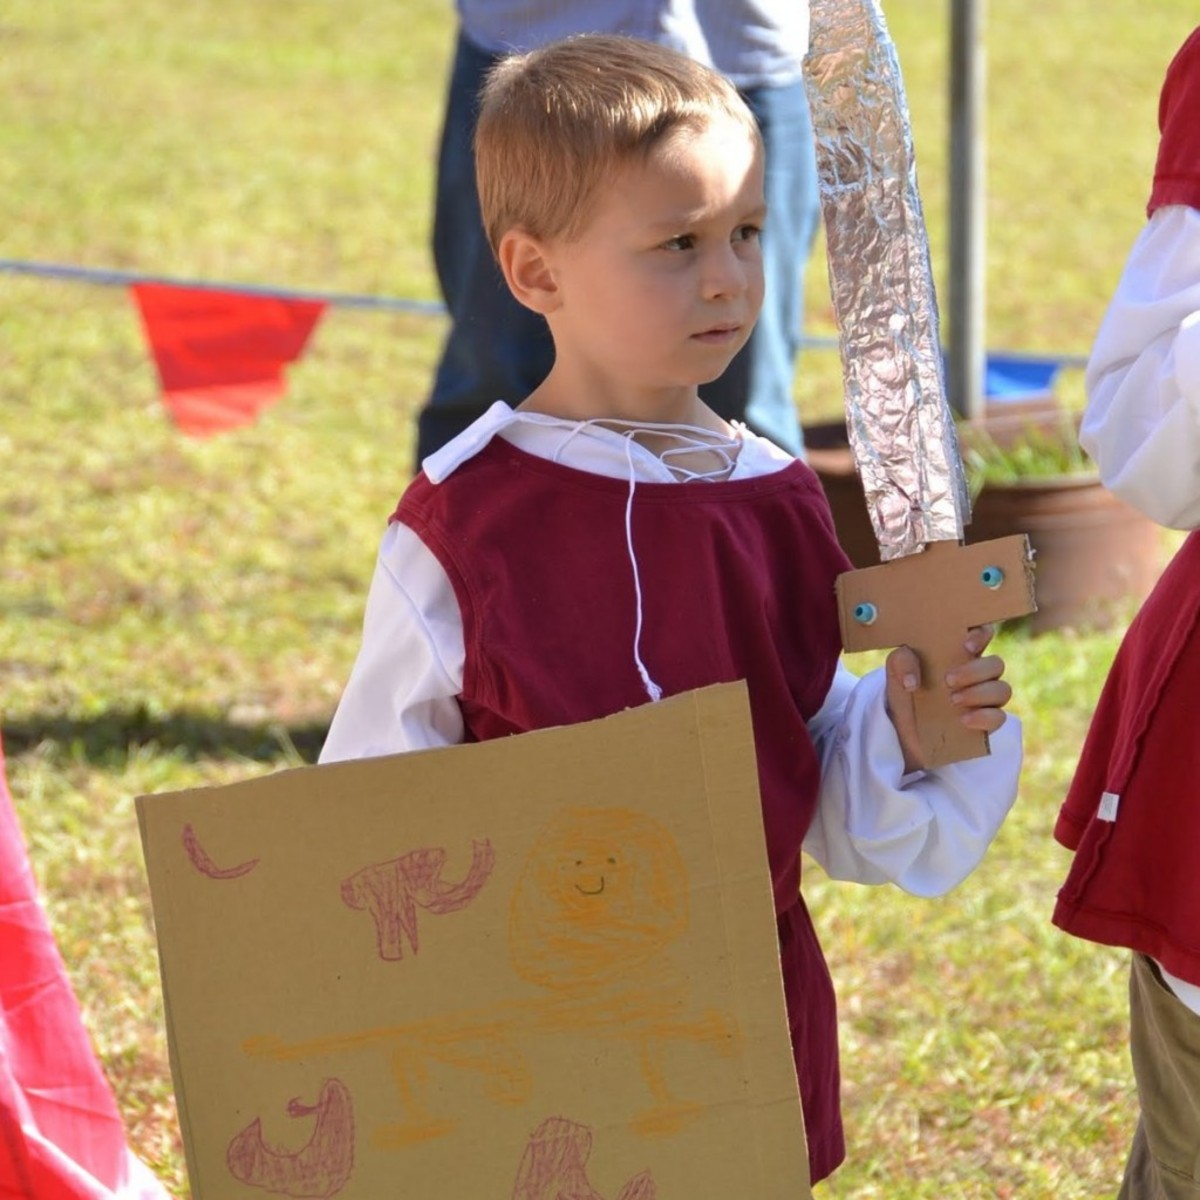 Making cardboard shields & swords was one of the activities we did this week at home during our History Morning Basket & Activities time from the above link on Knights & the Crusades.